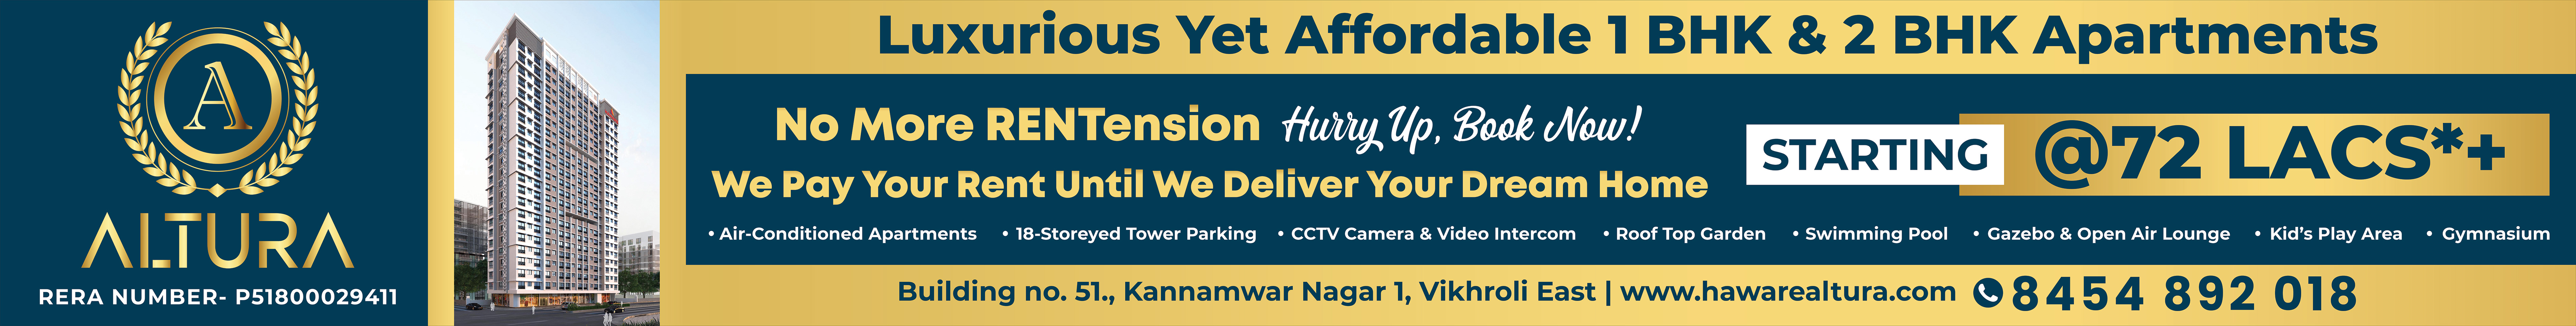 Luxurious Yet Affordable 1 BHK & 2 BHK Apartments